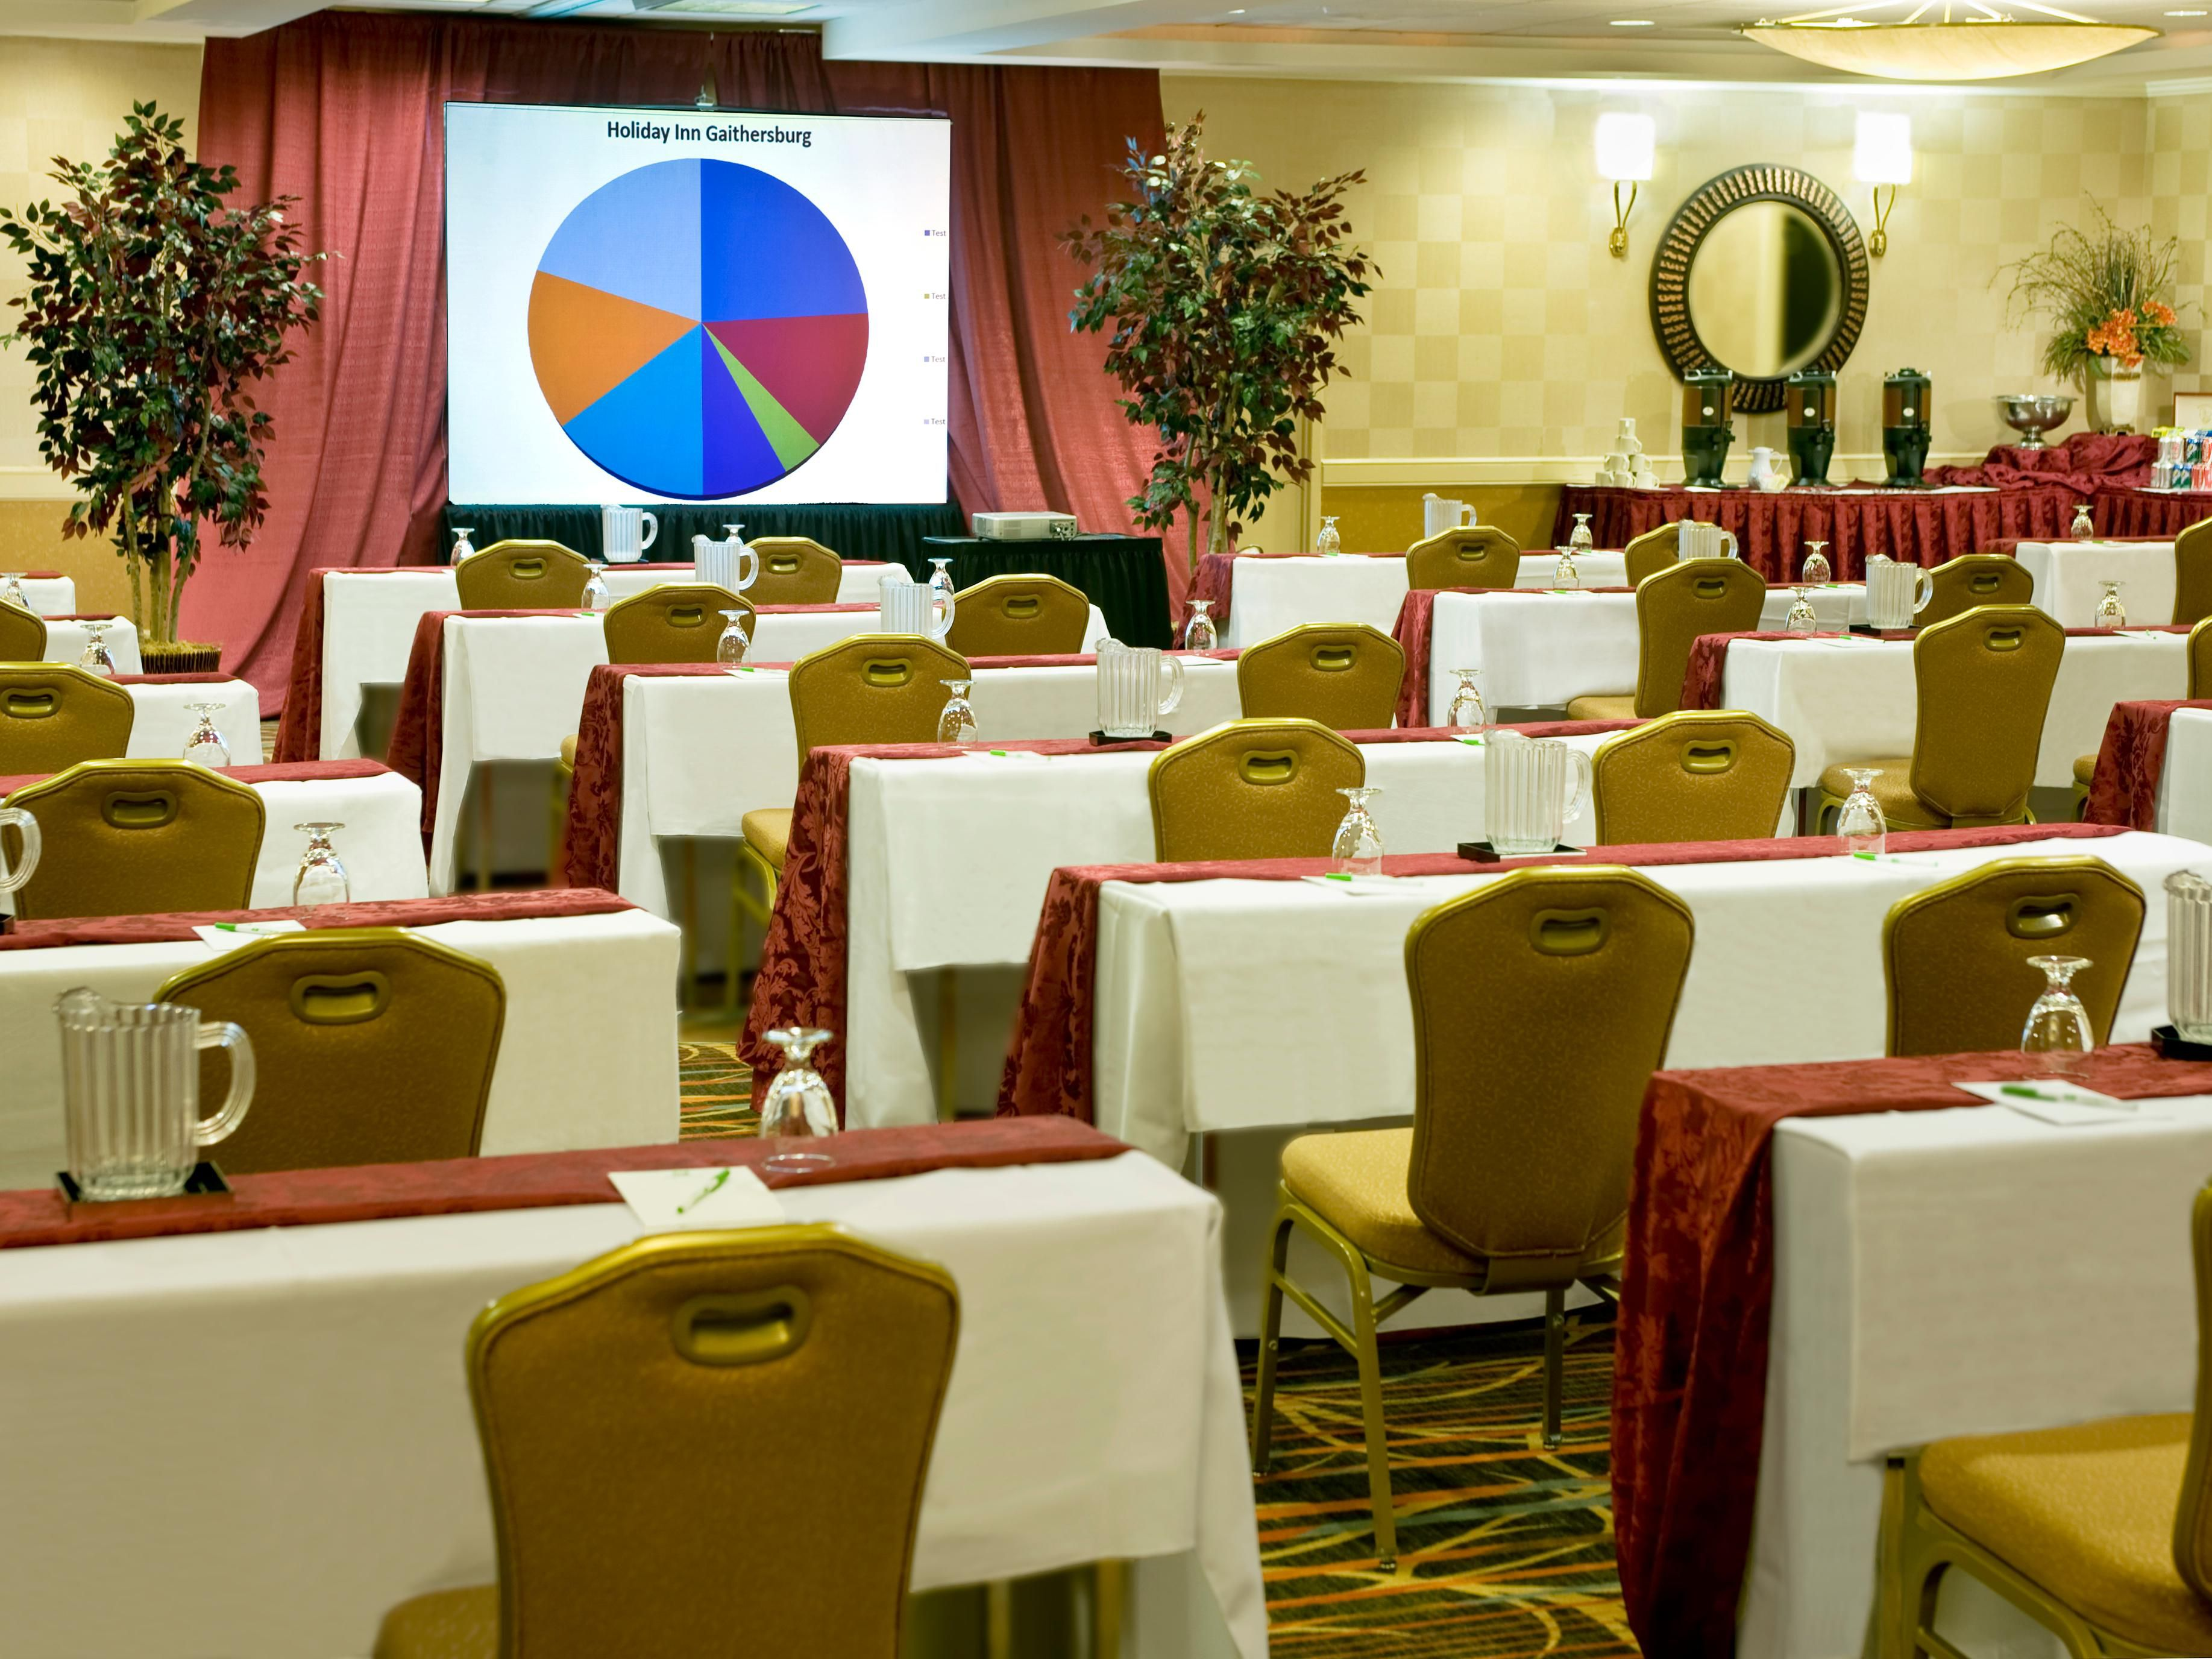 Hold your next event in our well appointed meeting/event space!